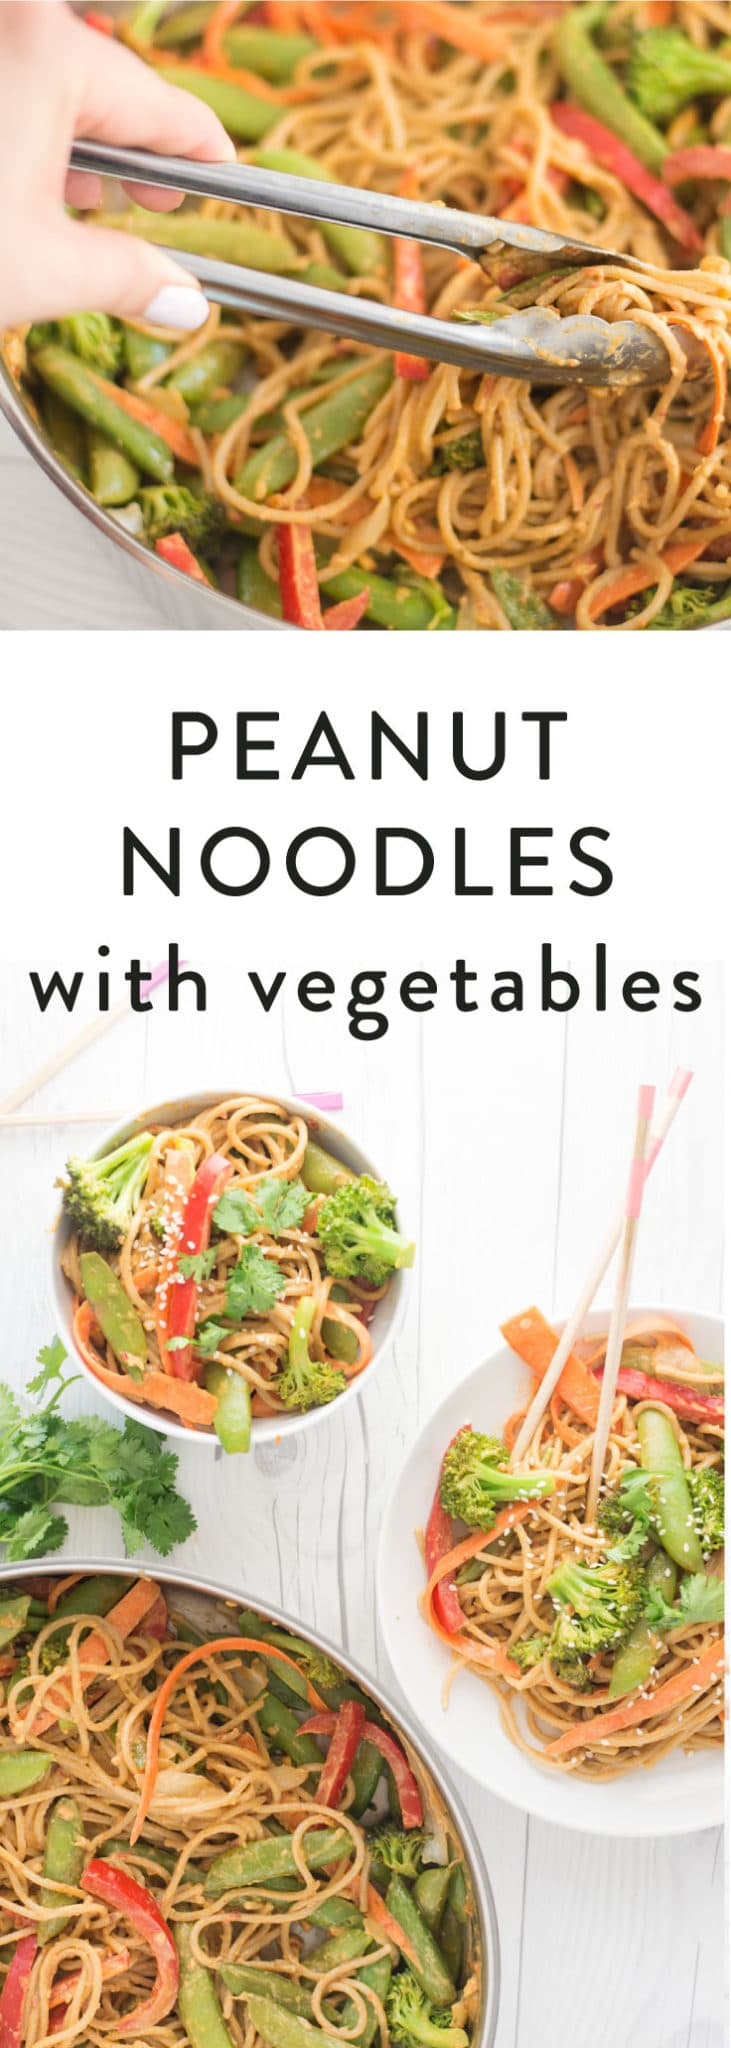 Peanut Noodles with Vegetables -- This quick and easy vegan meal is not only healthy, but perfect for lunch or dinner! - mindfulavocado